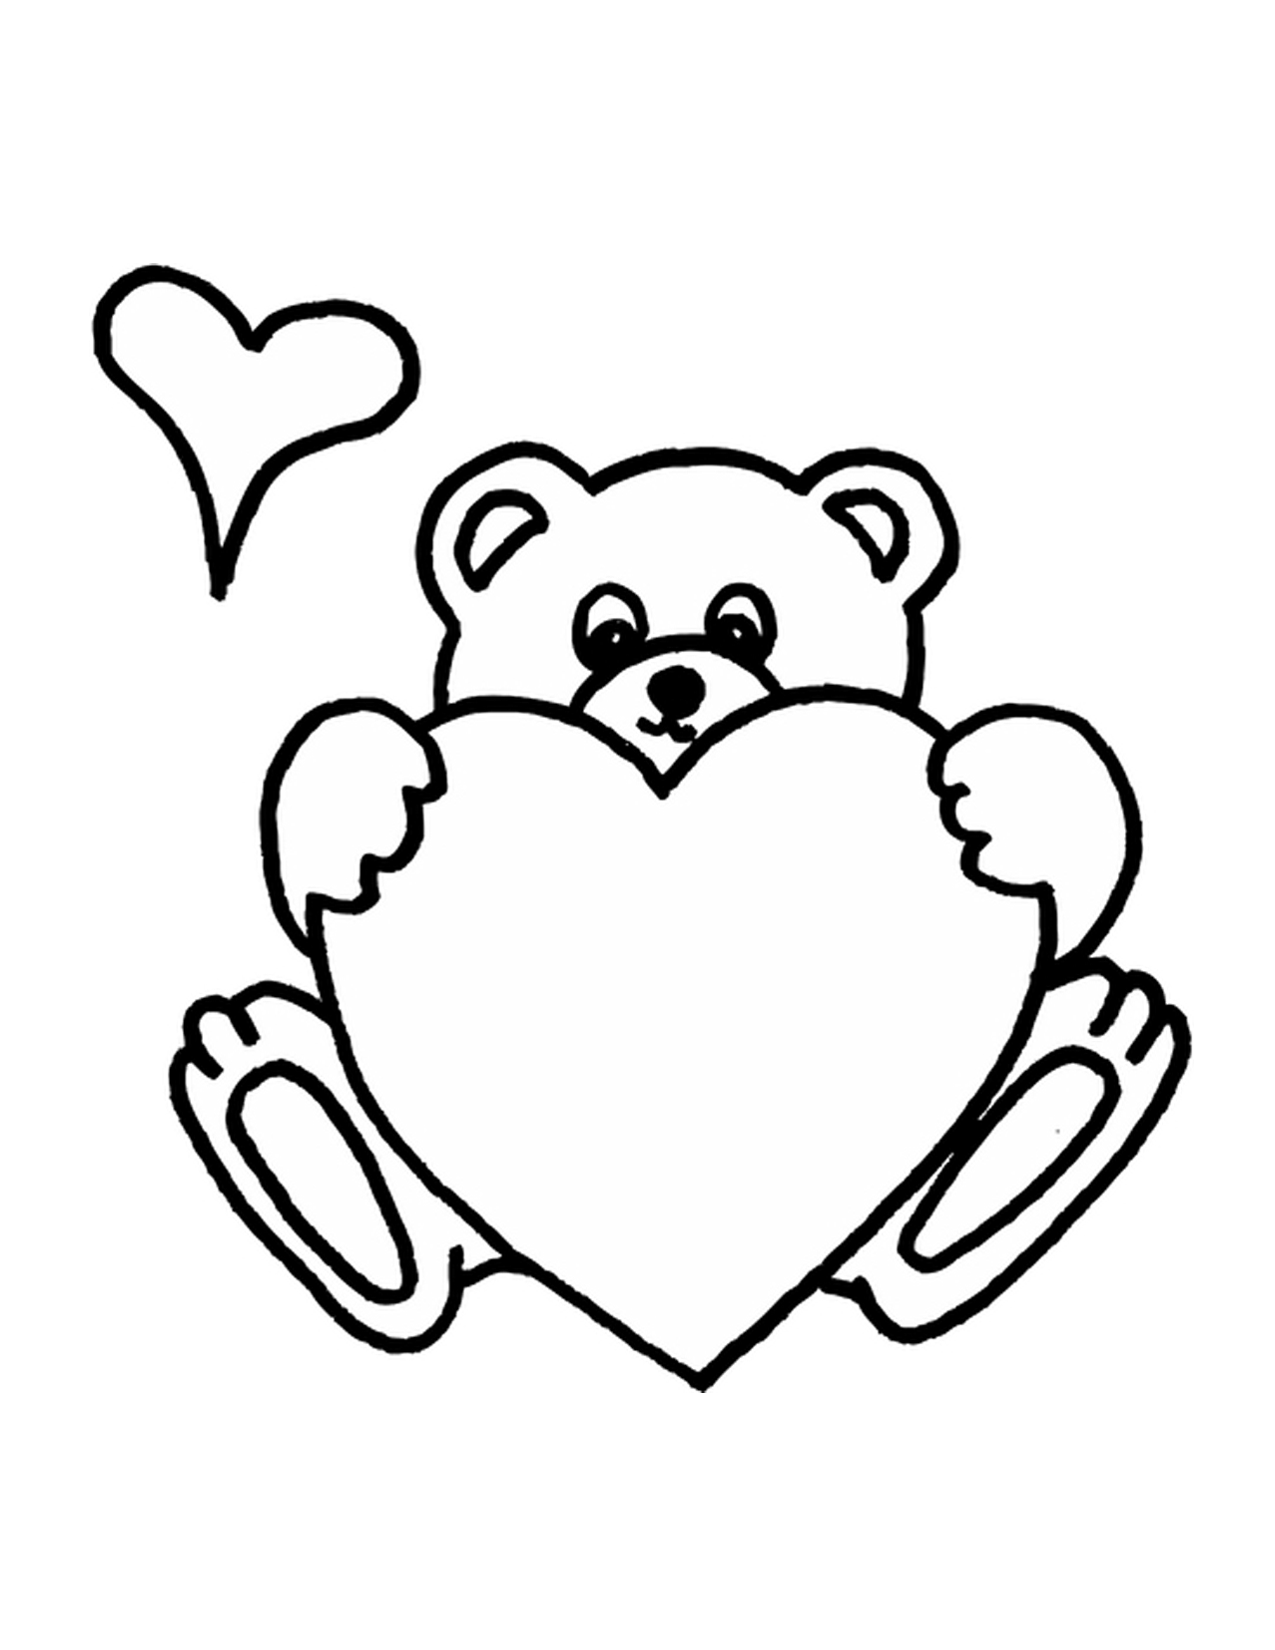 Teddy Bear Holding A Heart Coloring Pages At Getcolorings